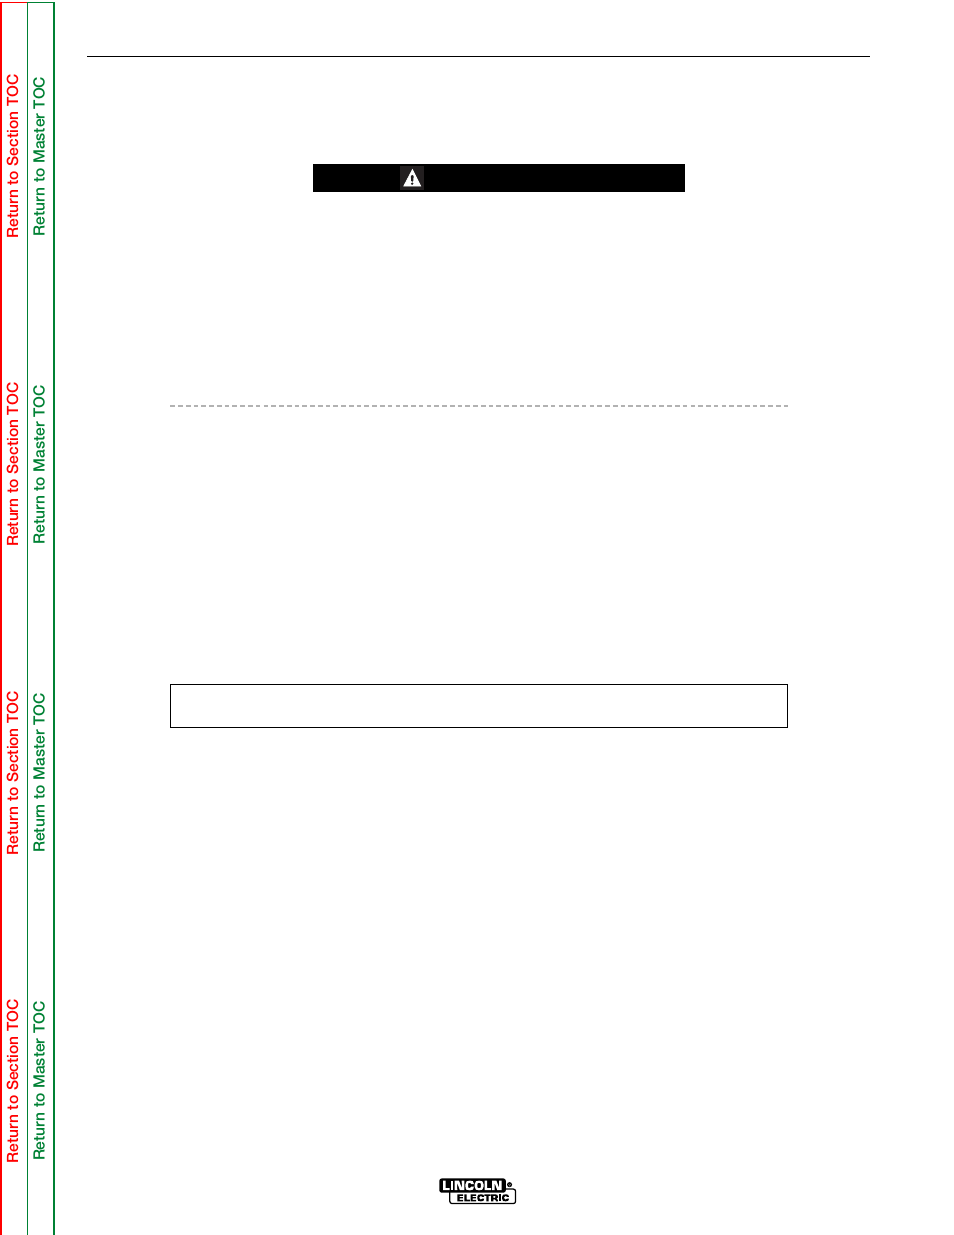 medium resolution of idler solenoid test troubleshooting repair lincoln electric commander svm145 b user manual page 77 175